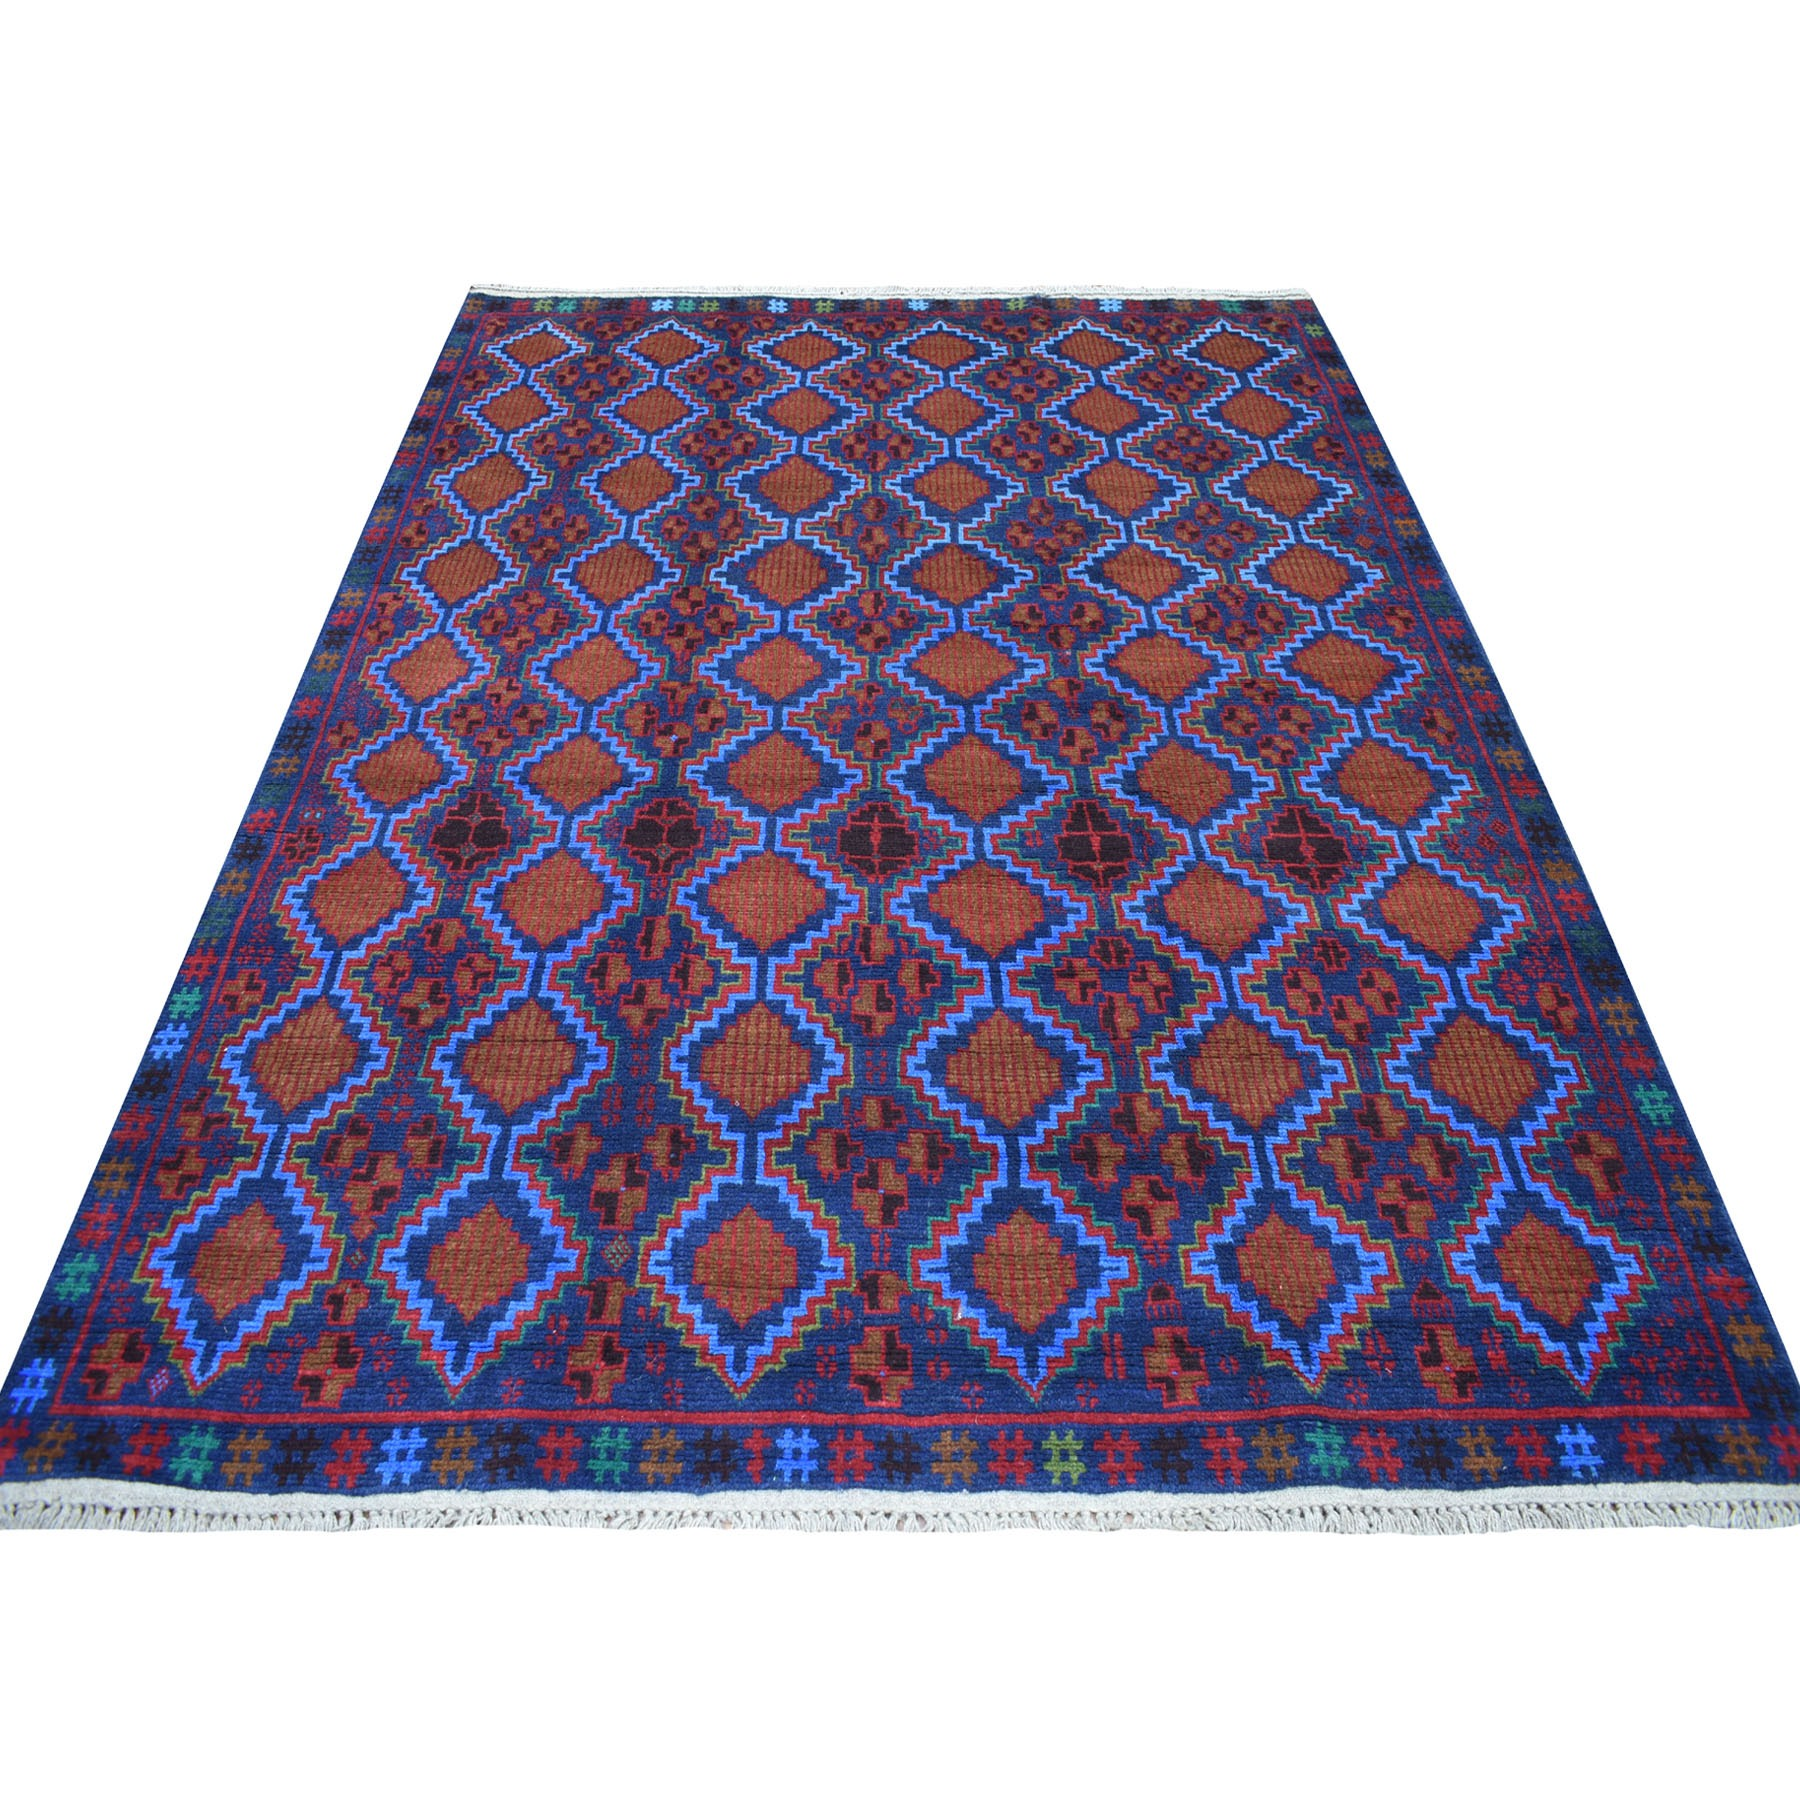 "6'1""X8' Blue Geometric Design Colorful Afghan Baluch Hand Knotted Pure Wool Oriental Rug moaeccb9"